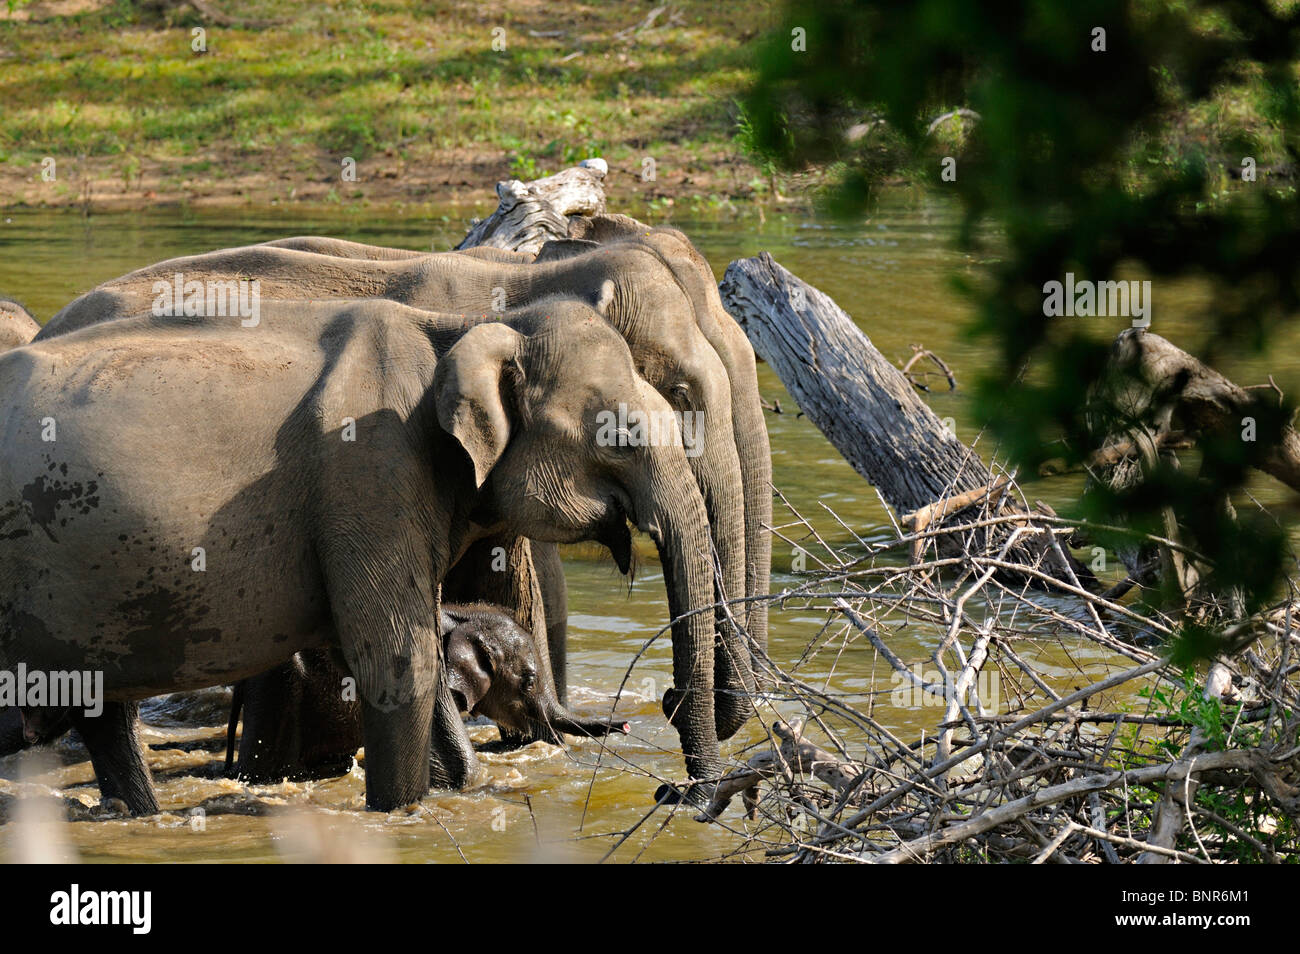 Elephant family with a very young baby in a water stream Yala or Ruhuna National Park in Sri Lanka - Stock Image